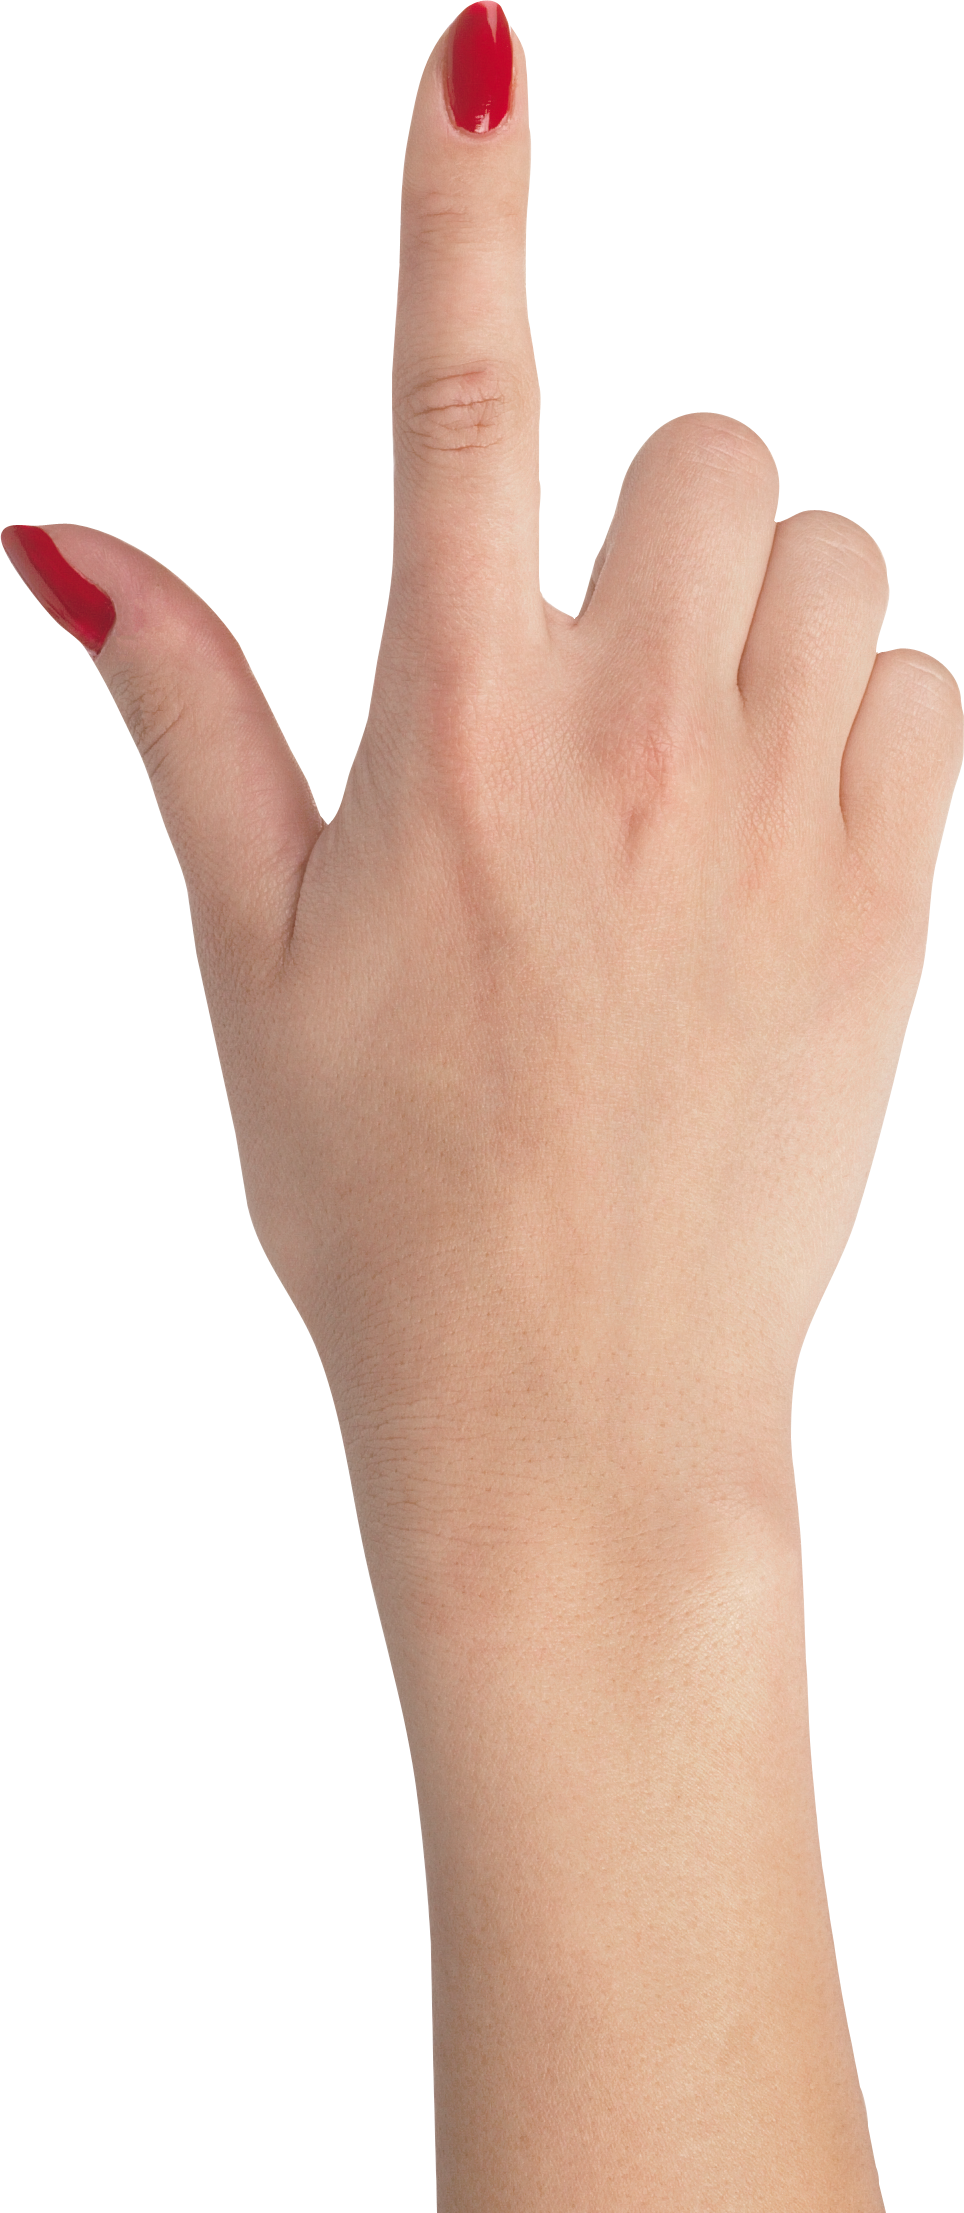 Finger touch png. Fingers images free download